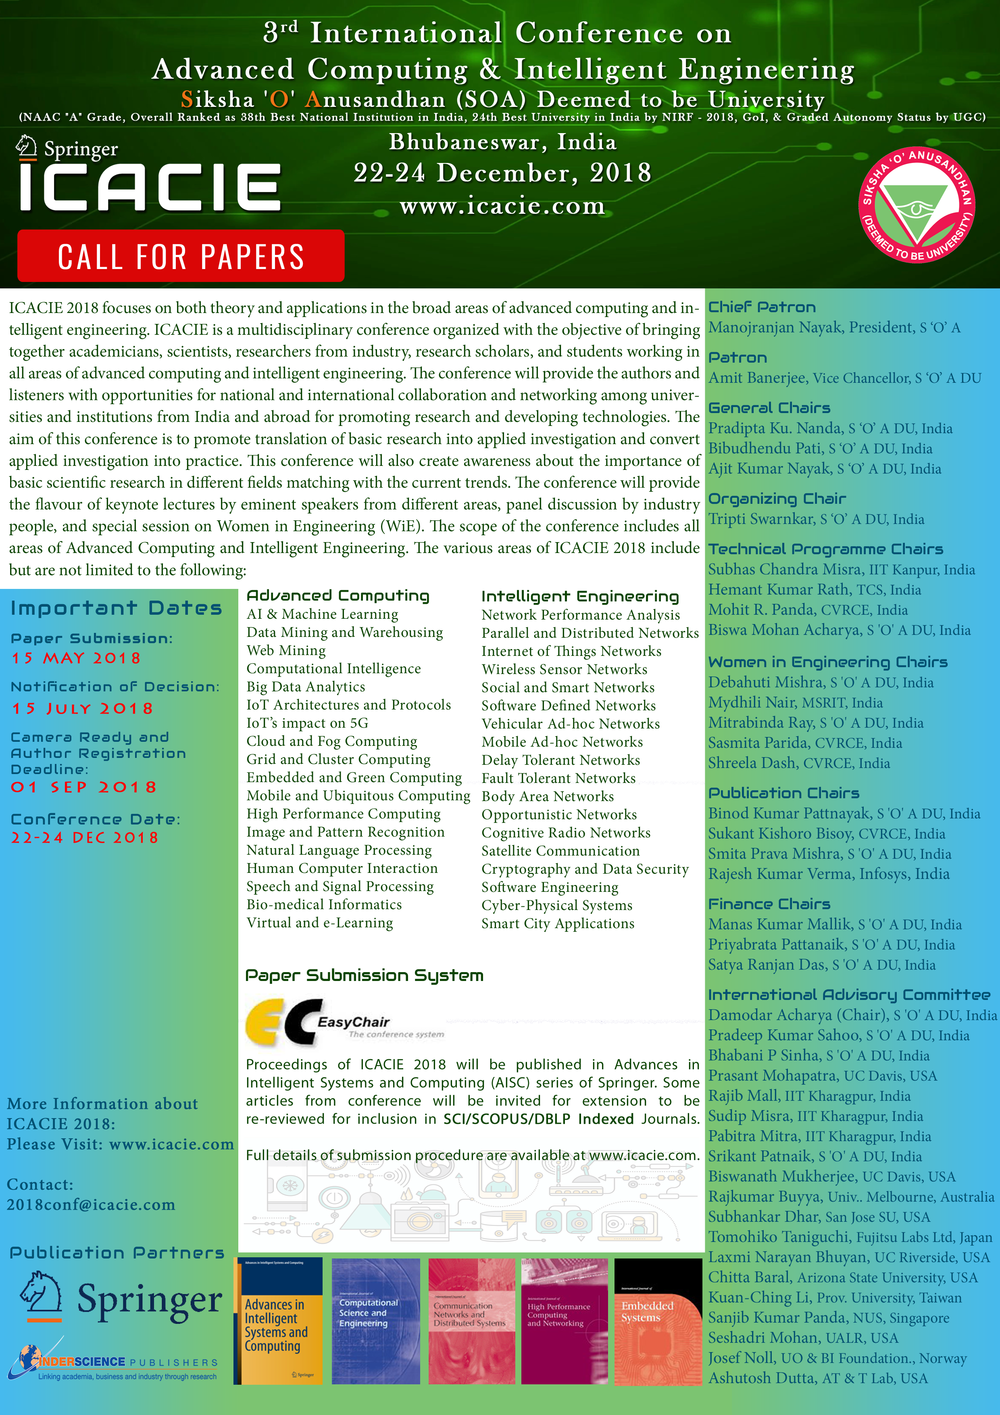 icacie2018_CFP (1).png